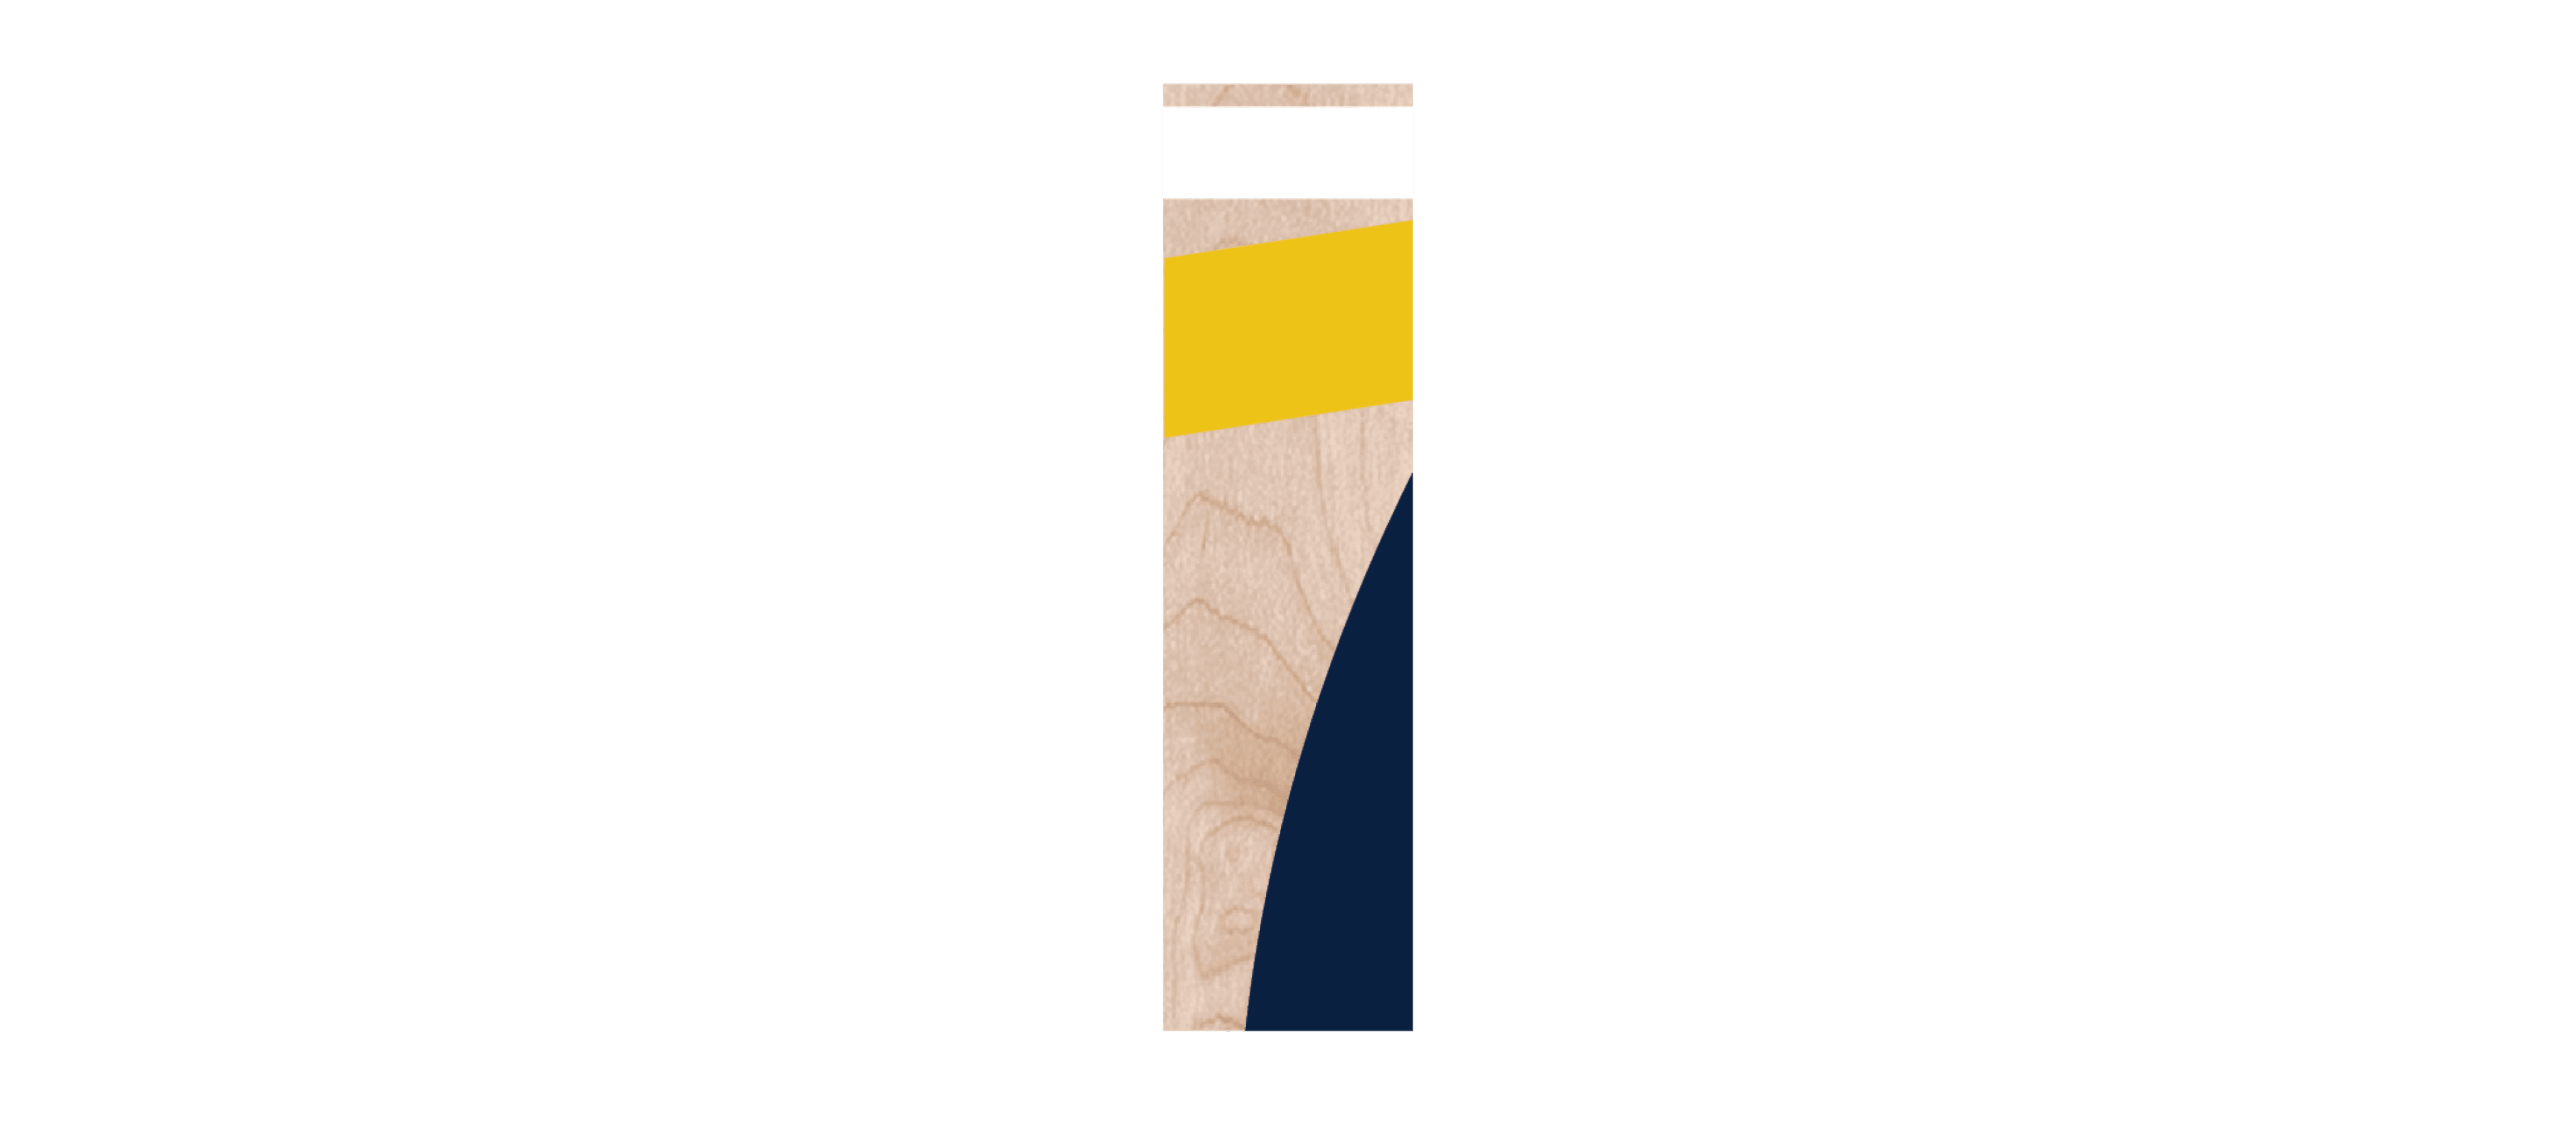 Sample of fanwall custom sports wall maple peel and stick wood wall planks for University of Michigan fans' man caves.